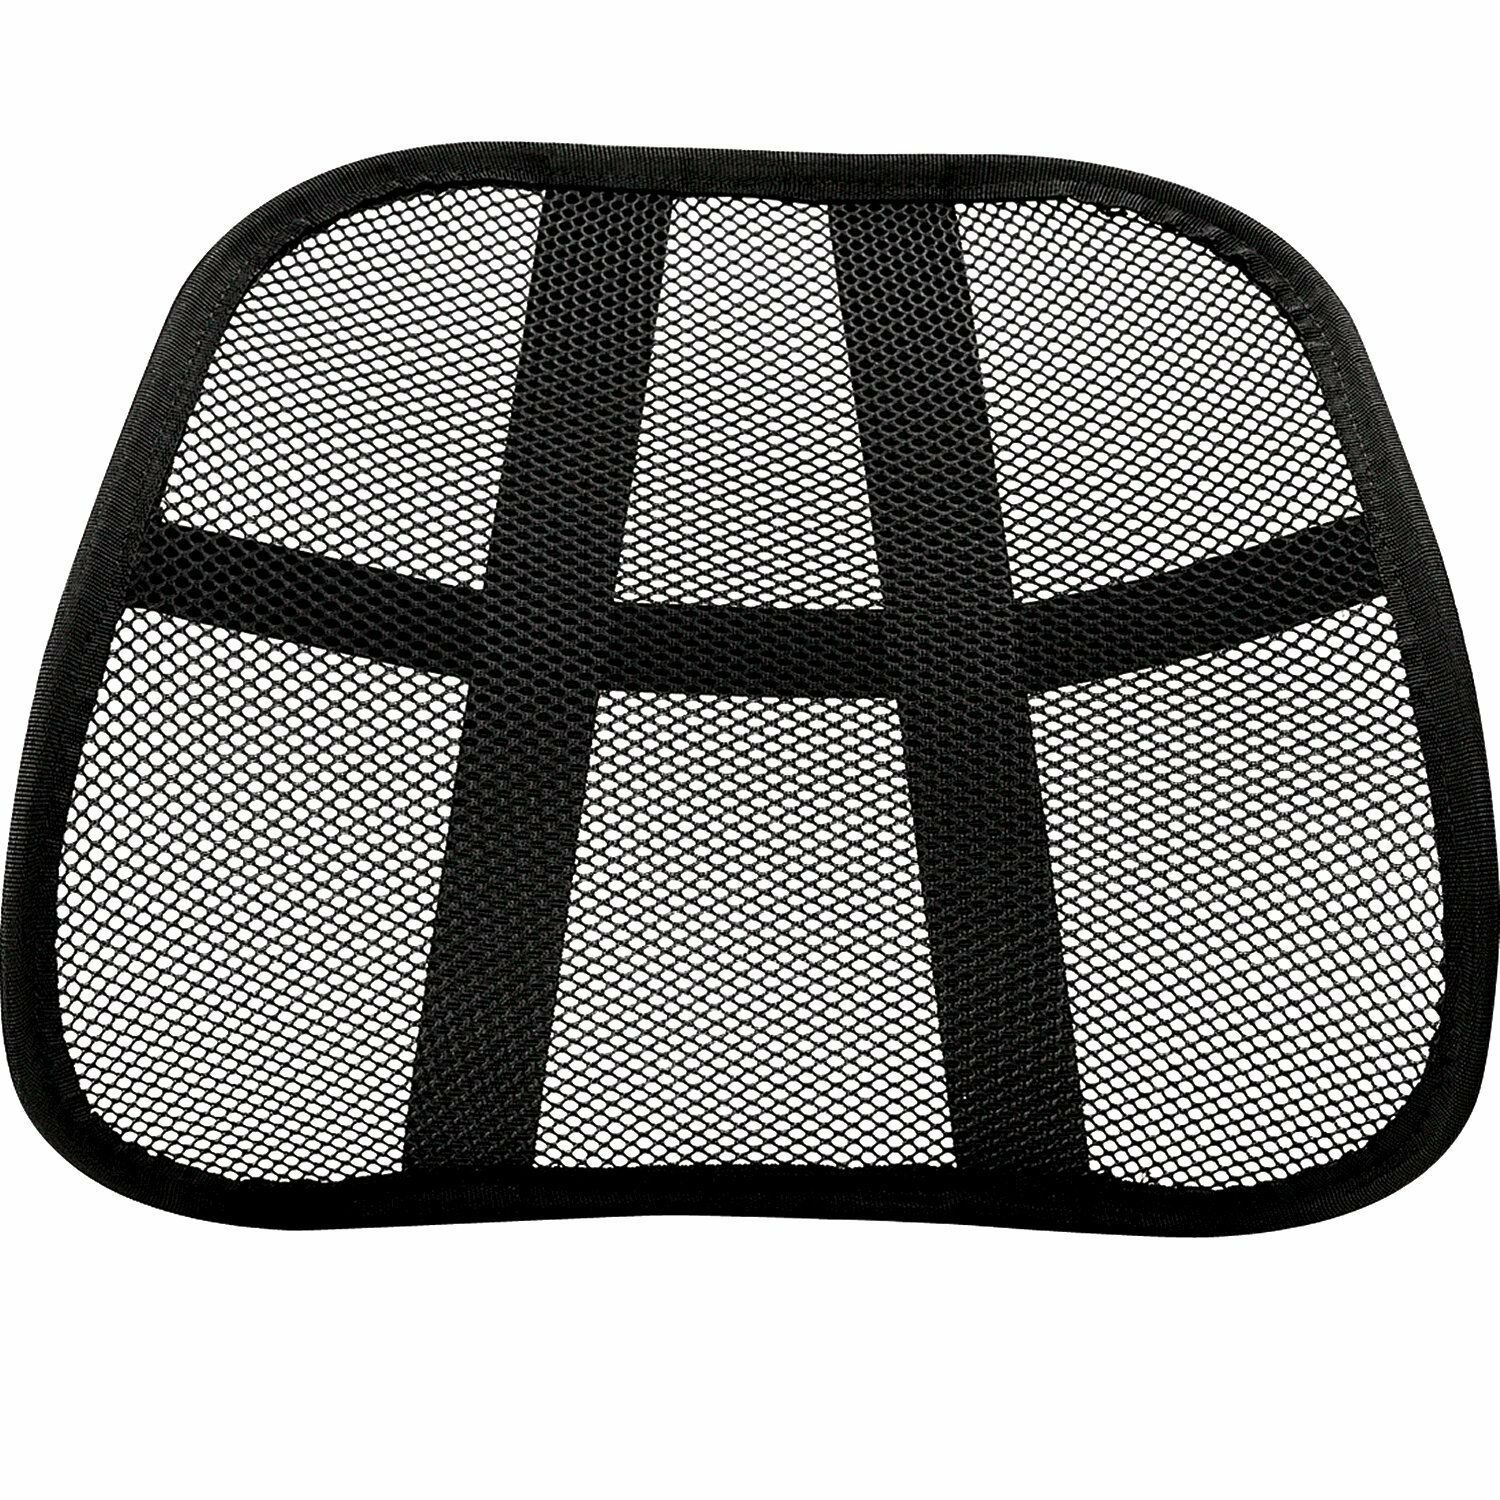 Mesh Back Lumbar Support Portable For Your Car Seat Chair Of